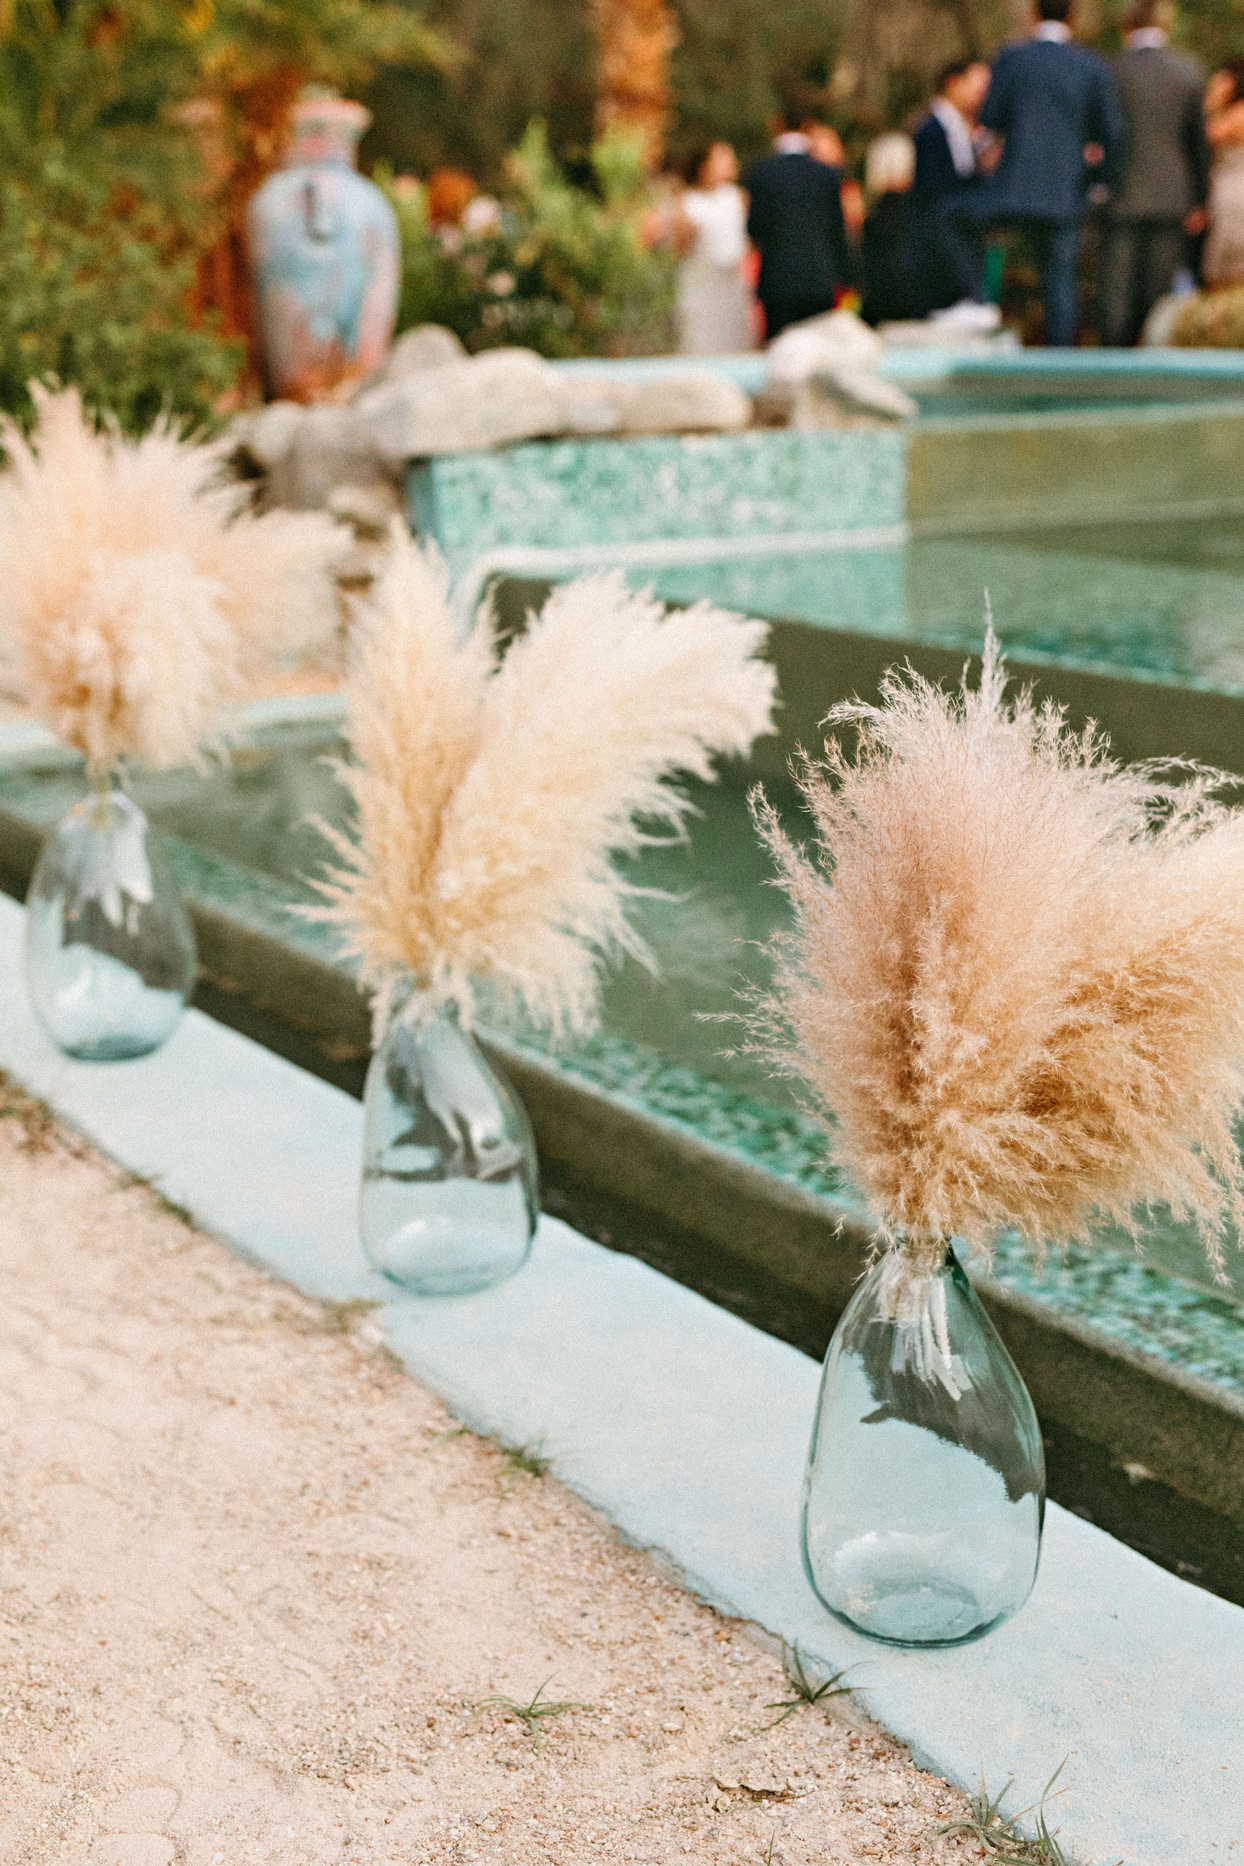 pampas grass and recycled glass vases lining aisle